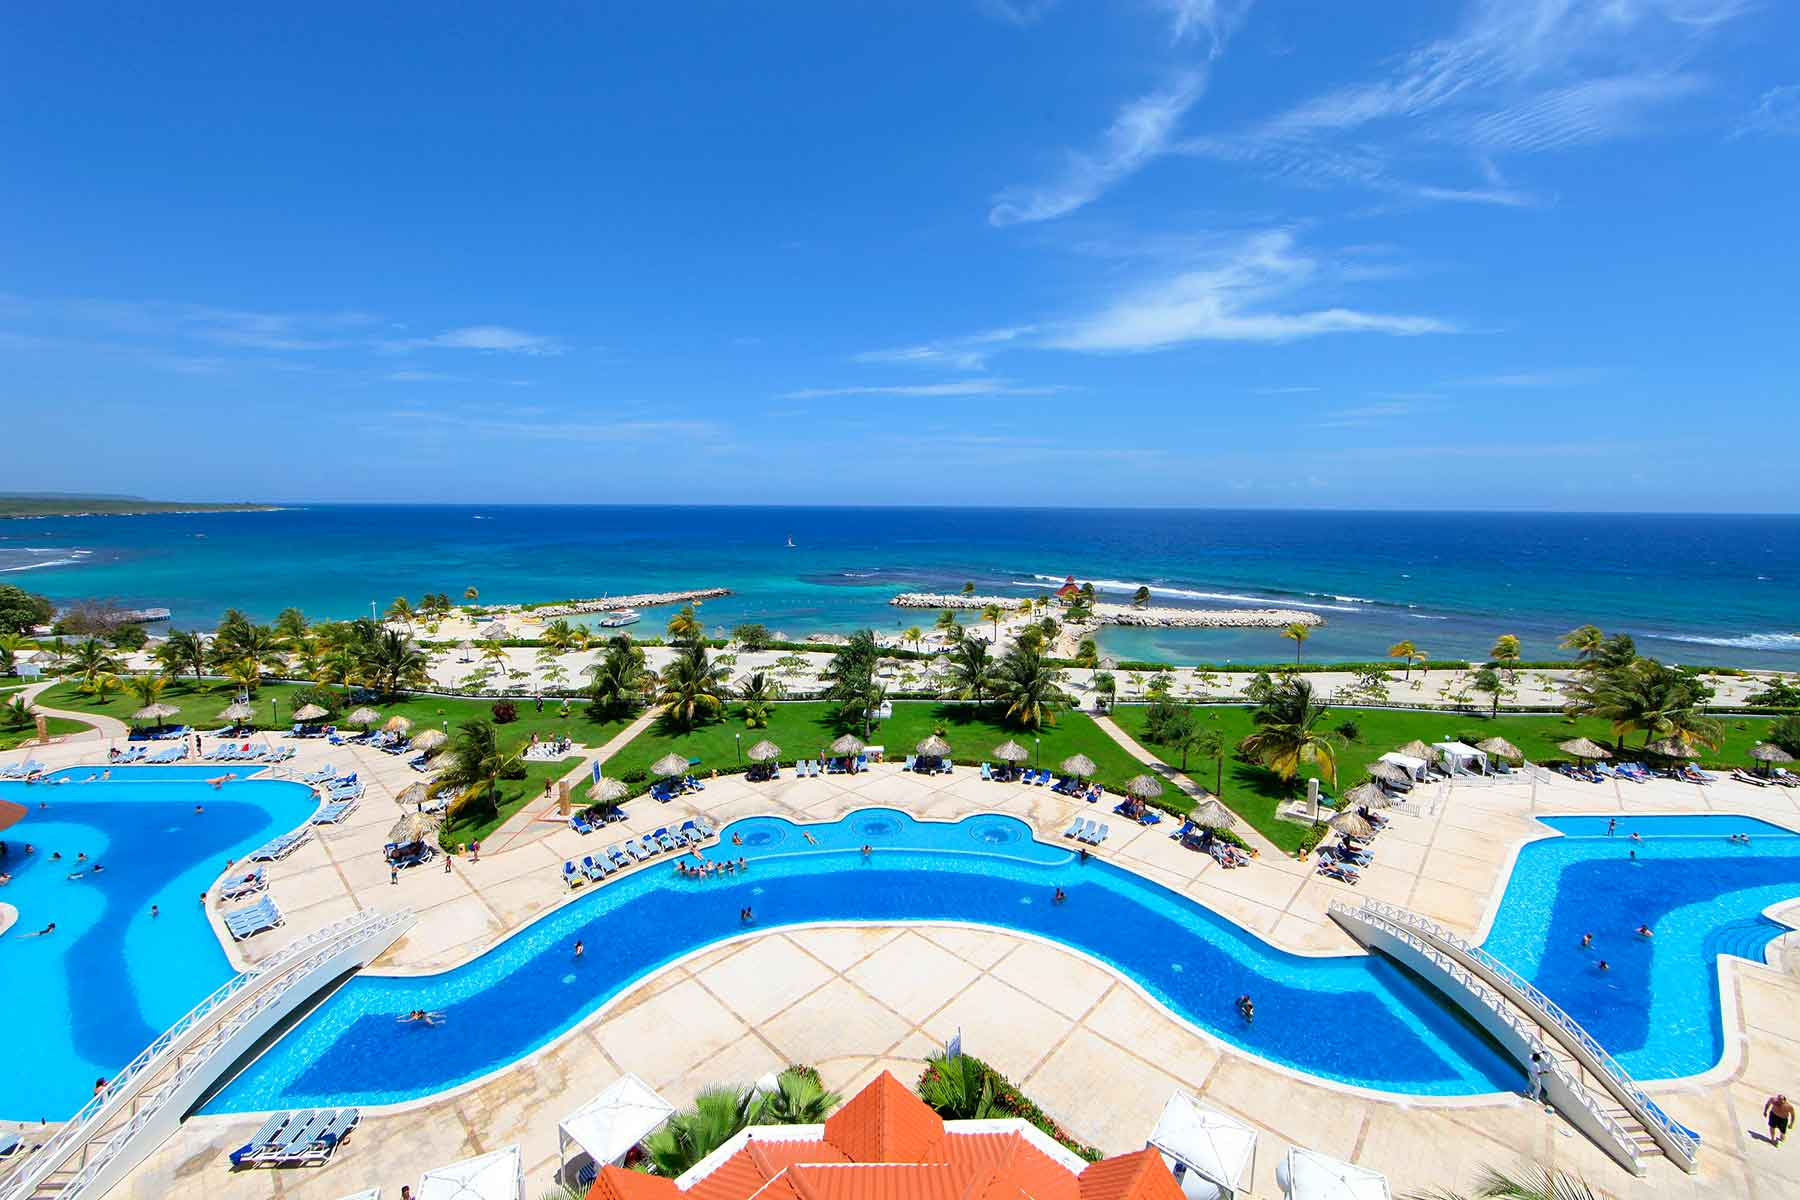 Grand bahia principe jamaica resort all inclusive bahia for All inclusive resorts in